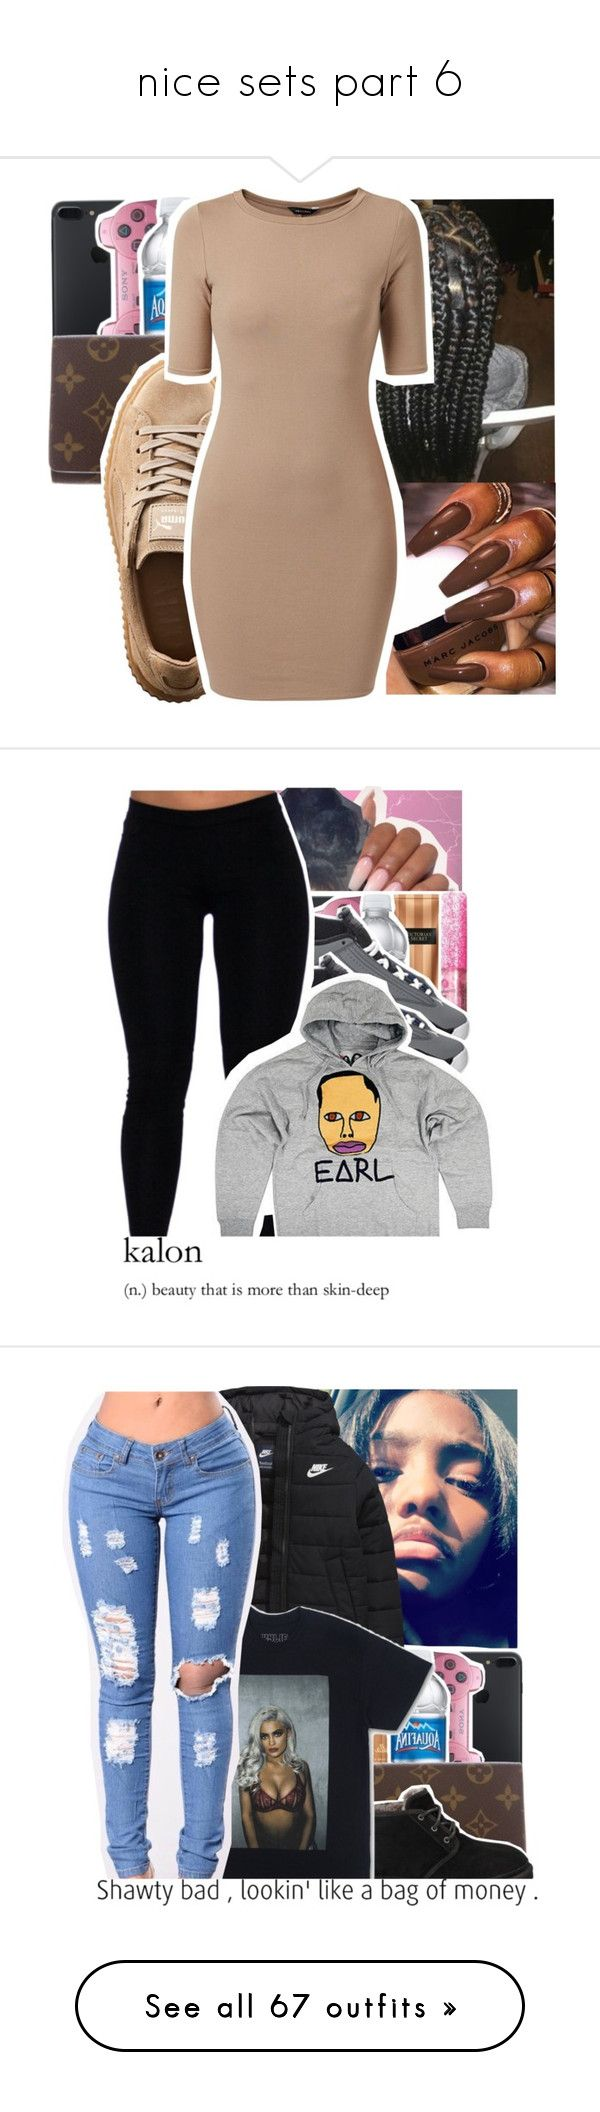 """""""nice sets part 6"""" by geazybxtch24 ❤ liked on Polyvore featuring Puma, Retrò, UGG Australia, NIKE, A BATHING APE, adidas, Joe Browns, Victoria's Secret, HUF and Converse"""